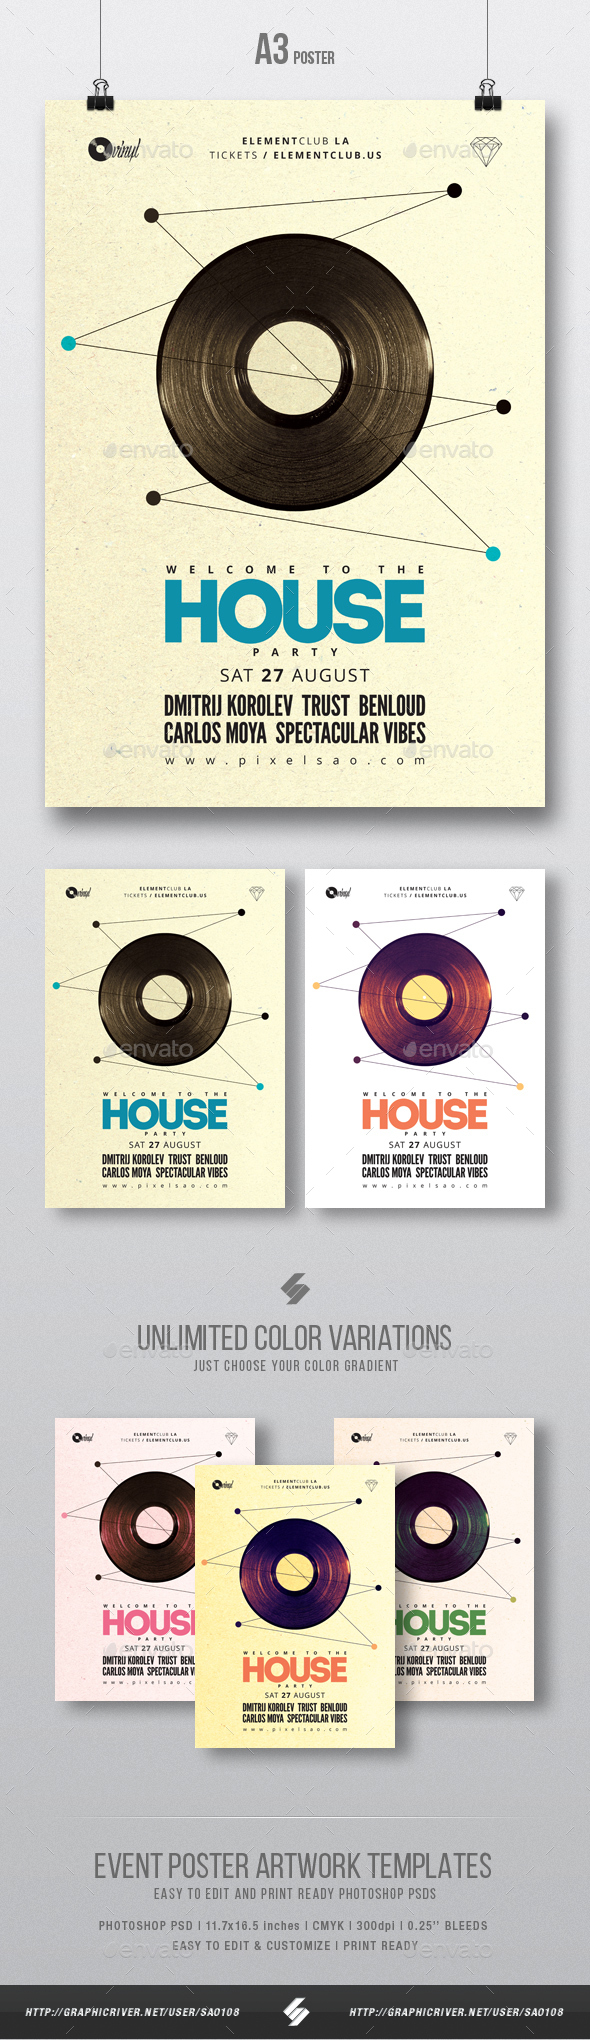 Oldschool House Music - Party Poster / Flyer Template A3 - Clubs & Parties Events